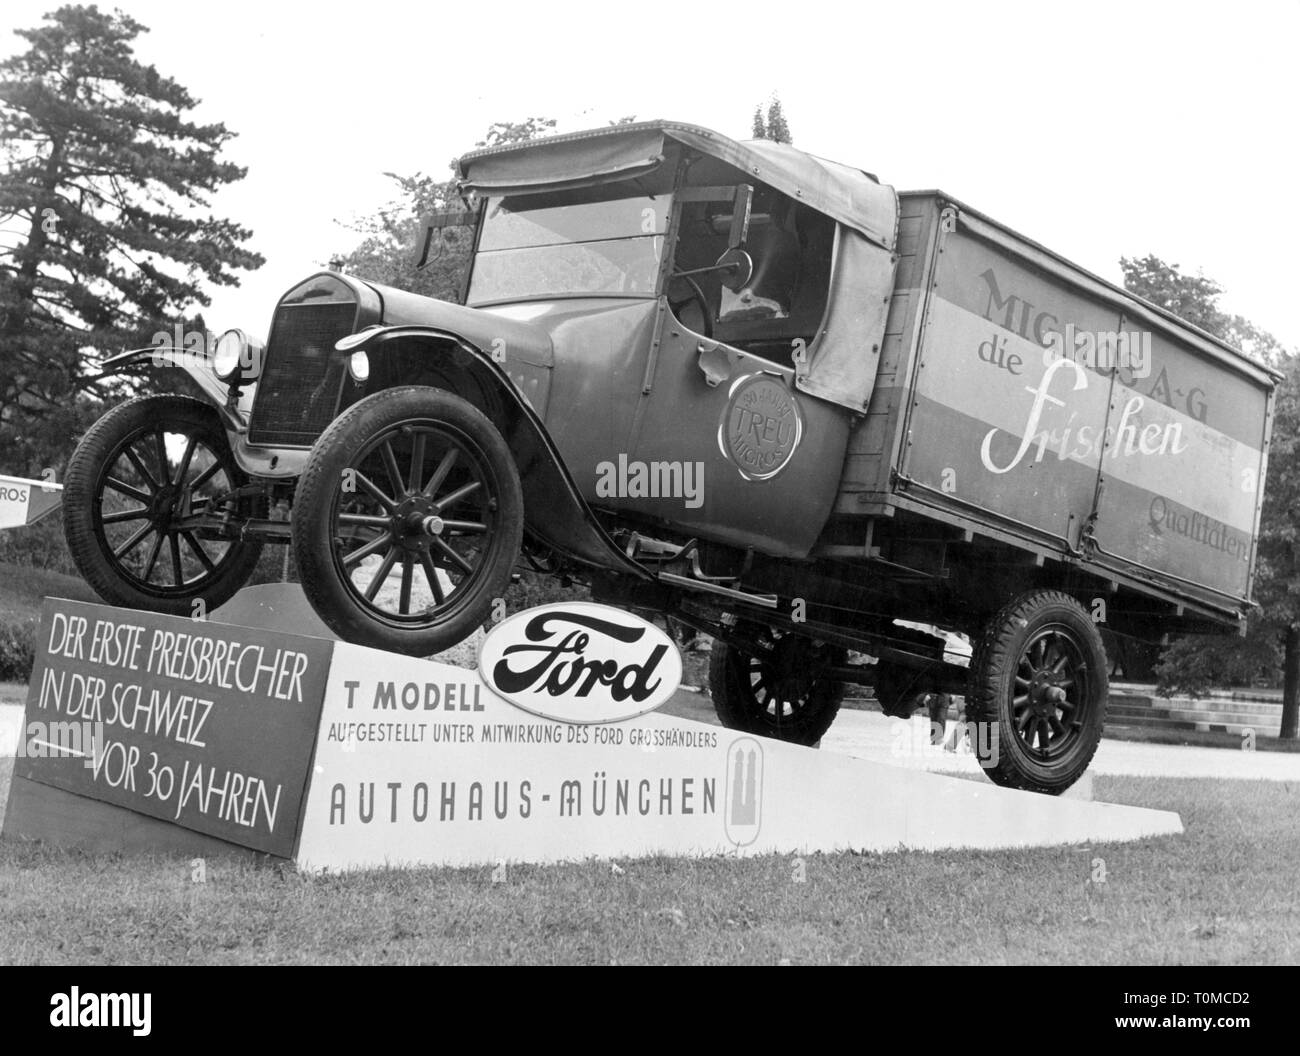 transport / transportation, cars, vehicle variants, Ford Model TT 1919, delivery van of the Migros-Genossenschaft, Zurich, Switzerland, positioned by Autohaus Munich, 1955, Migros, cooperative, companionship, business enterprise, commercial enterprise, business enterprises, commercial enterprises, company, companies, trade, monument, monuments, lorries, trucks, lorry, transporter, transporters, Model T, Tin Lizzie, 1950s, 50s, 20th century, transport, transportation, cars, car, delivery van, delivery truck, position, positioning, historic, histor, Additional-Rights-Clearance-Info-Not-Available - Stock Image